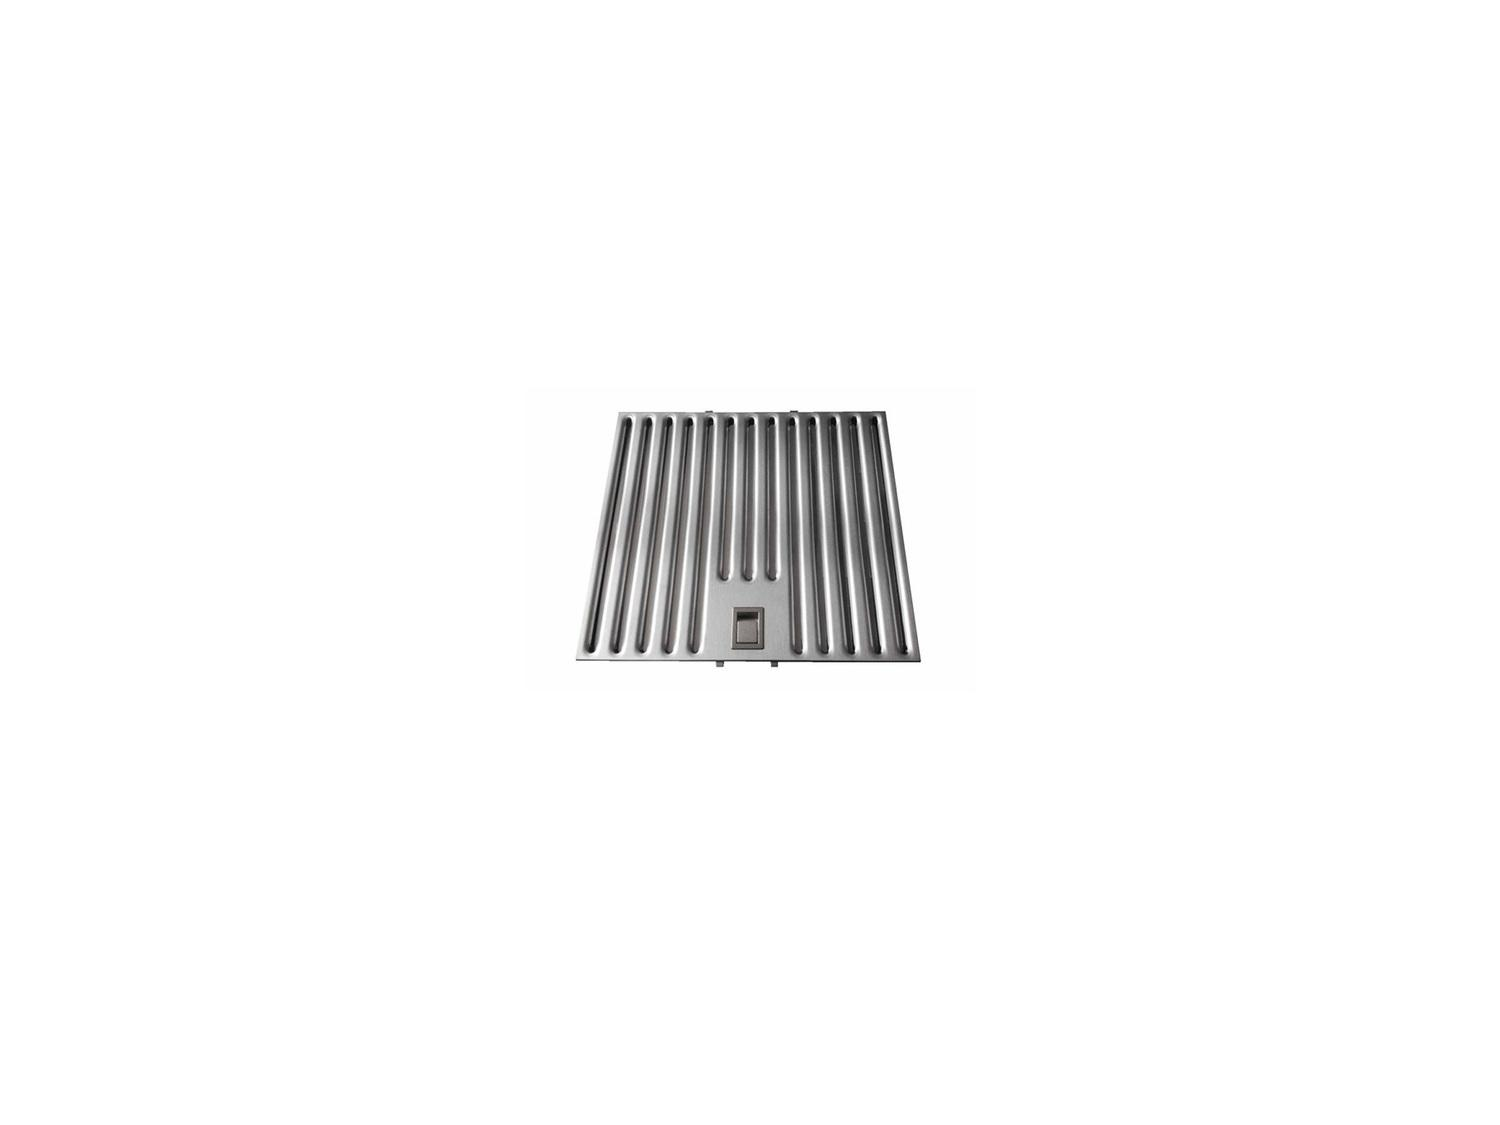 Kit Baffle Filters for KU48-36-24 PRO1X/14 models Stainless Steel